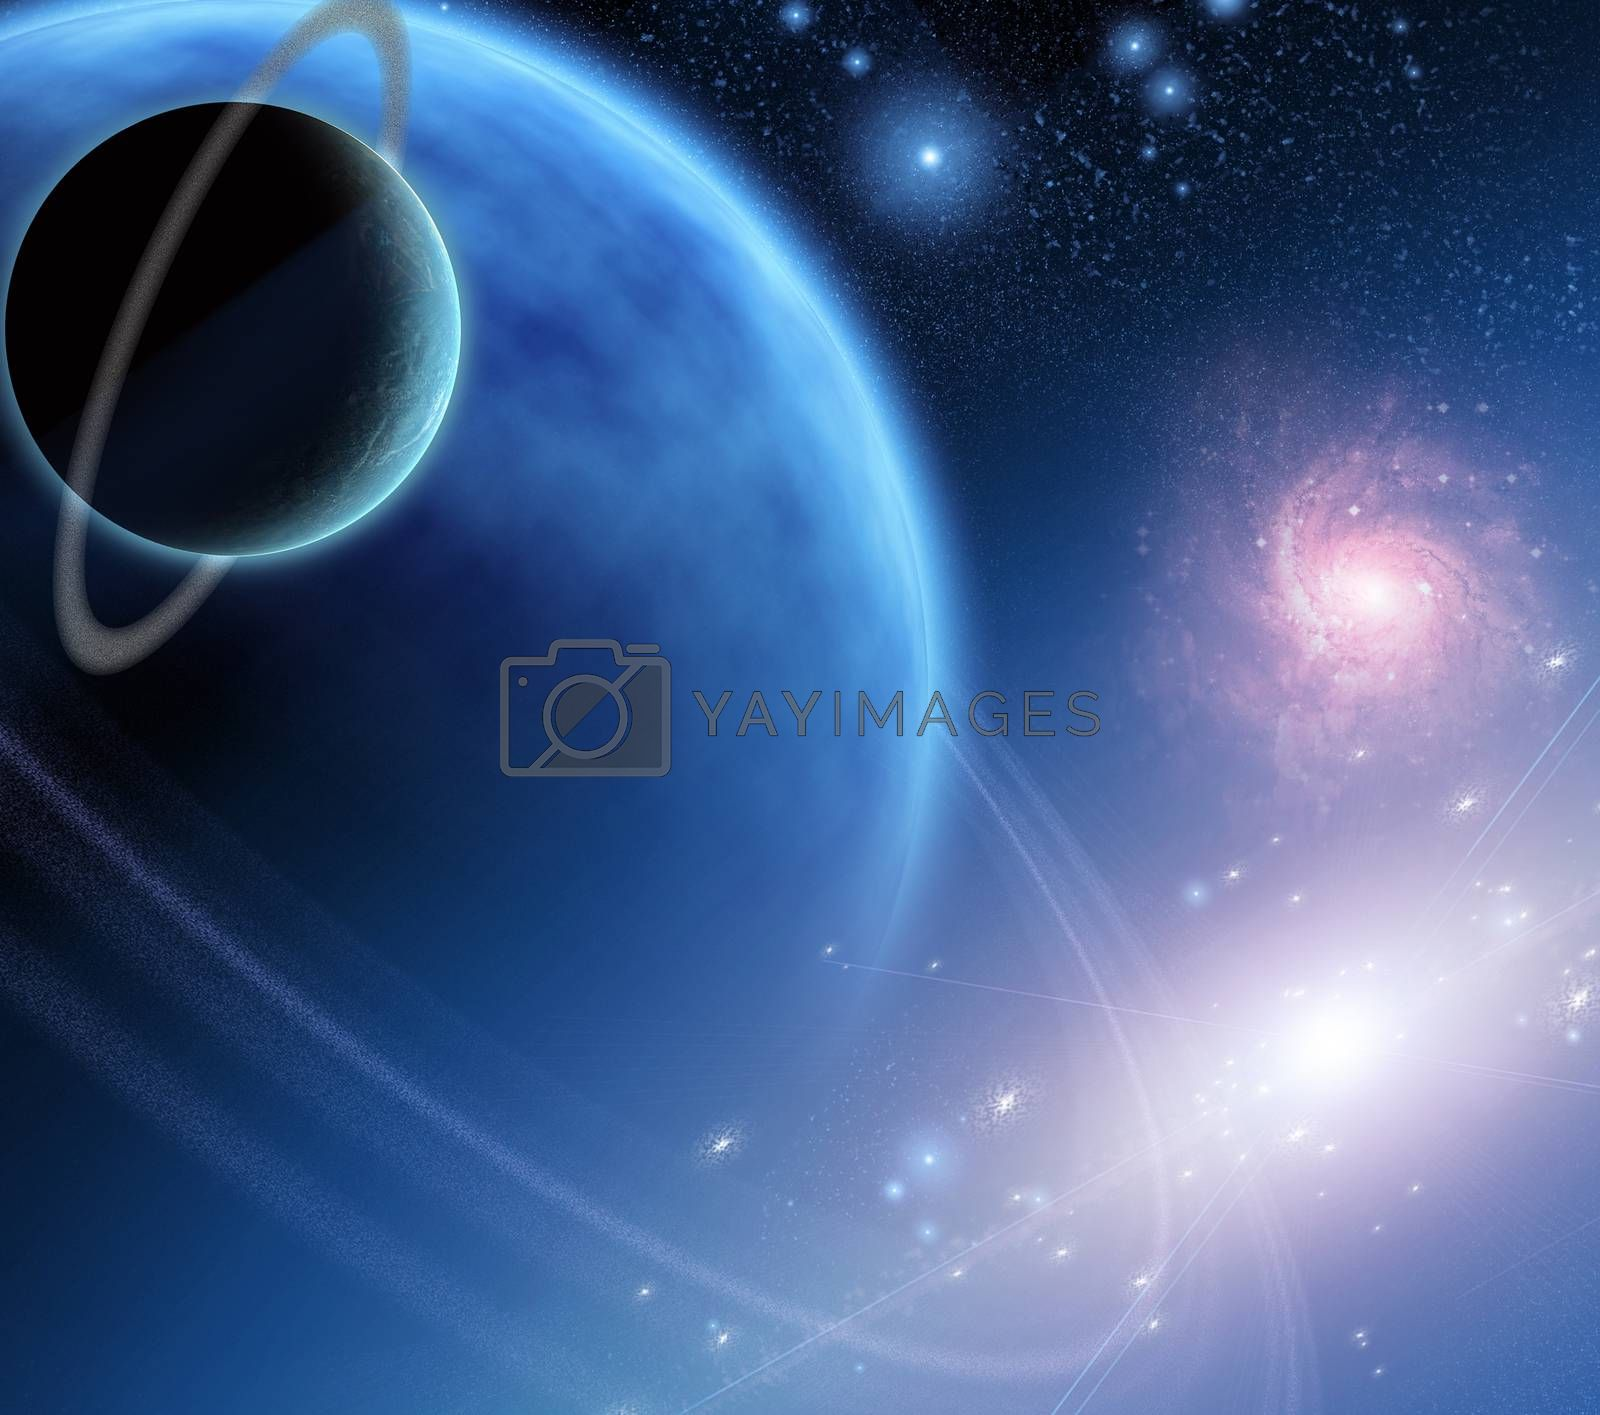 Ringed Planets in Space. 3D rendering